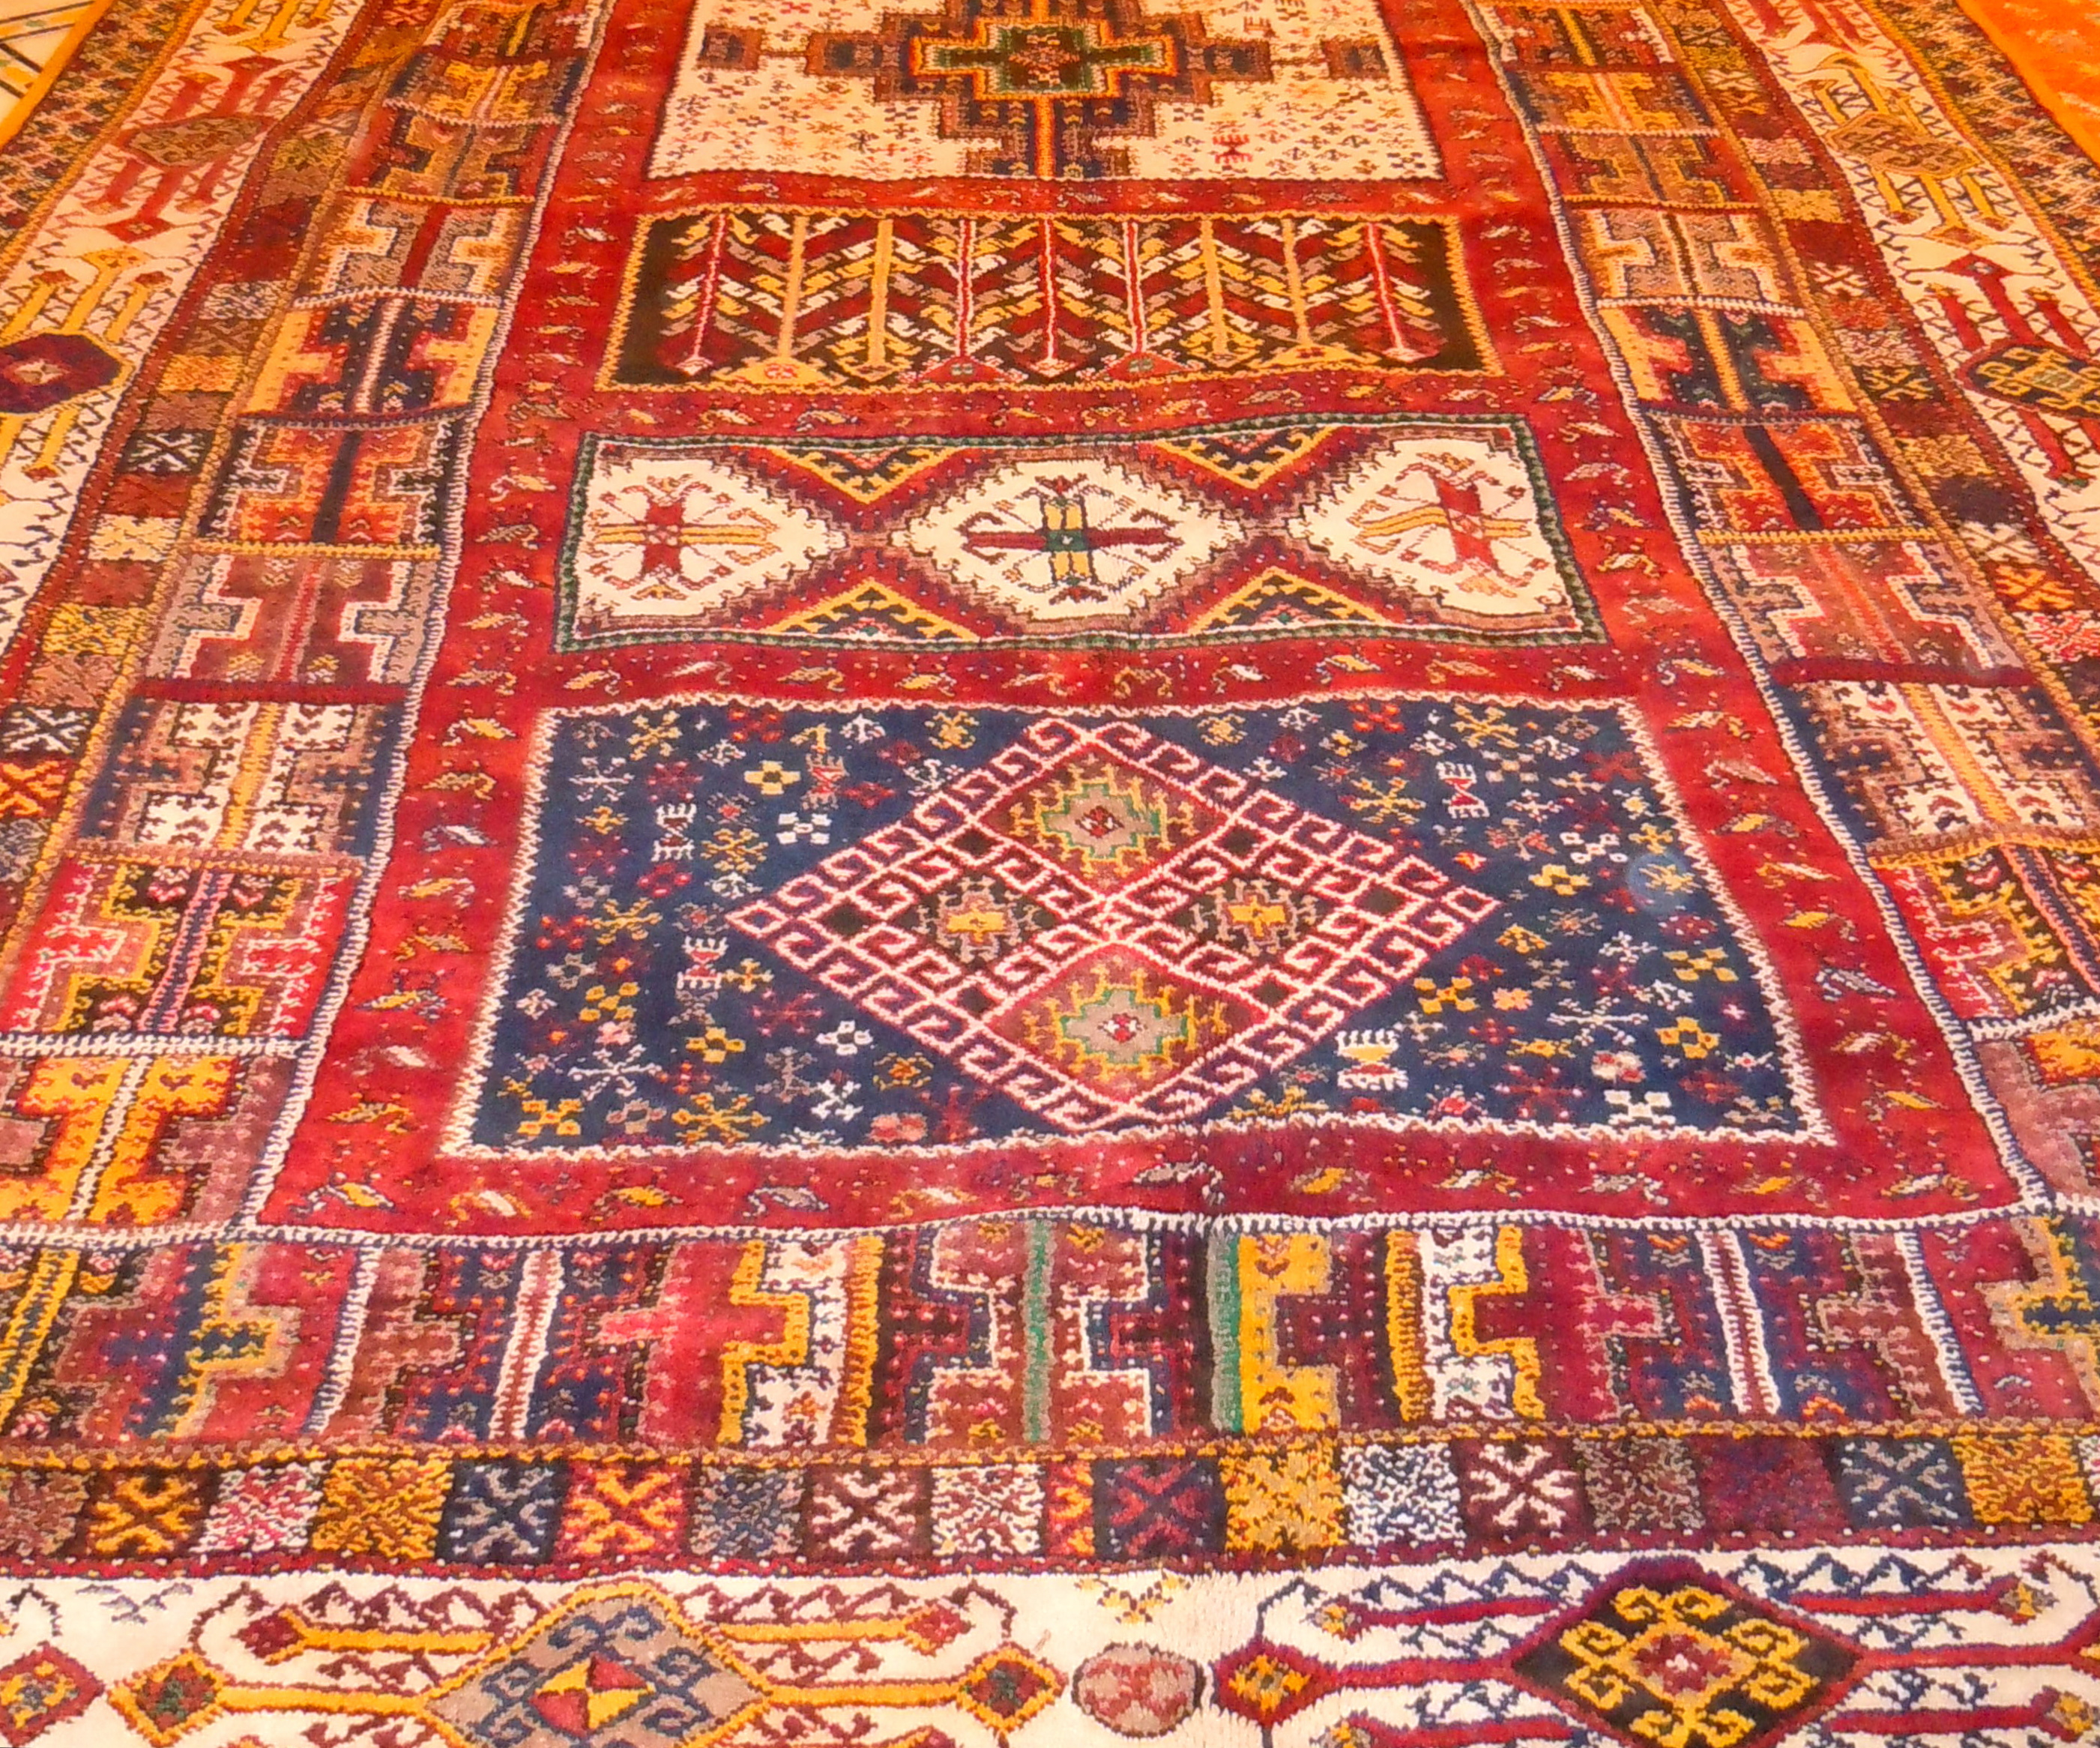 Zayane Rugs And Hanbal Rugs Travel Exploration Blog